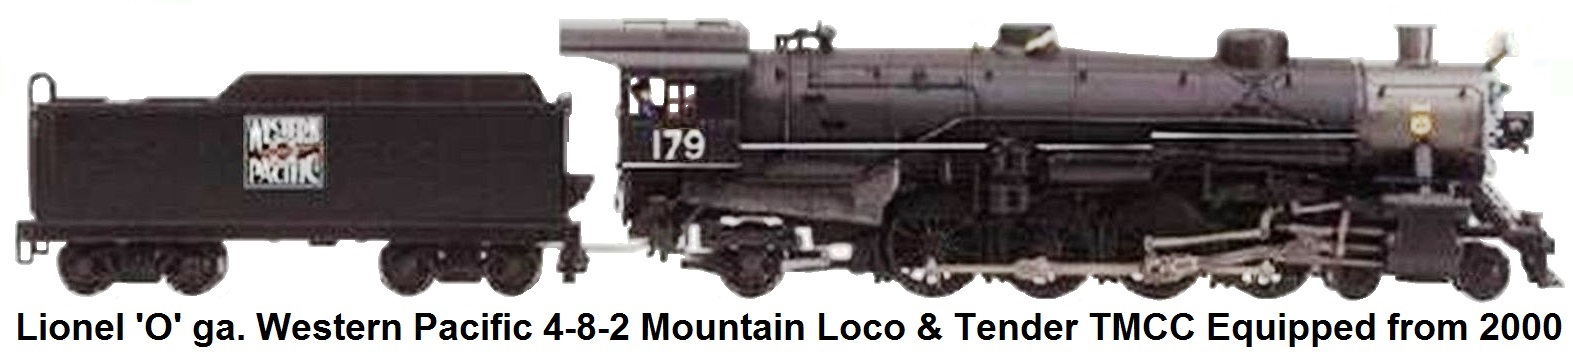 Lionel 'O' gauge #6-28059 Western Pacific TMCC Equipped 4-8-2 Mountain Loco and Tender introduced in 2000